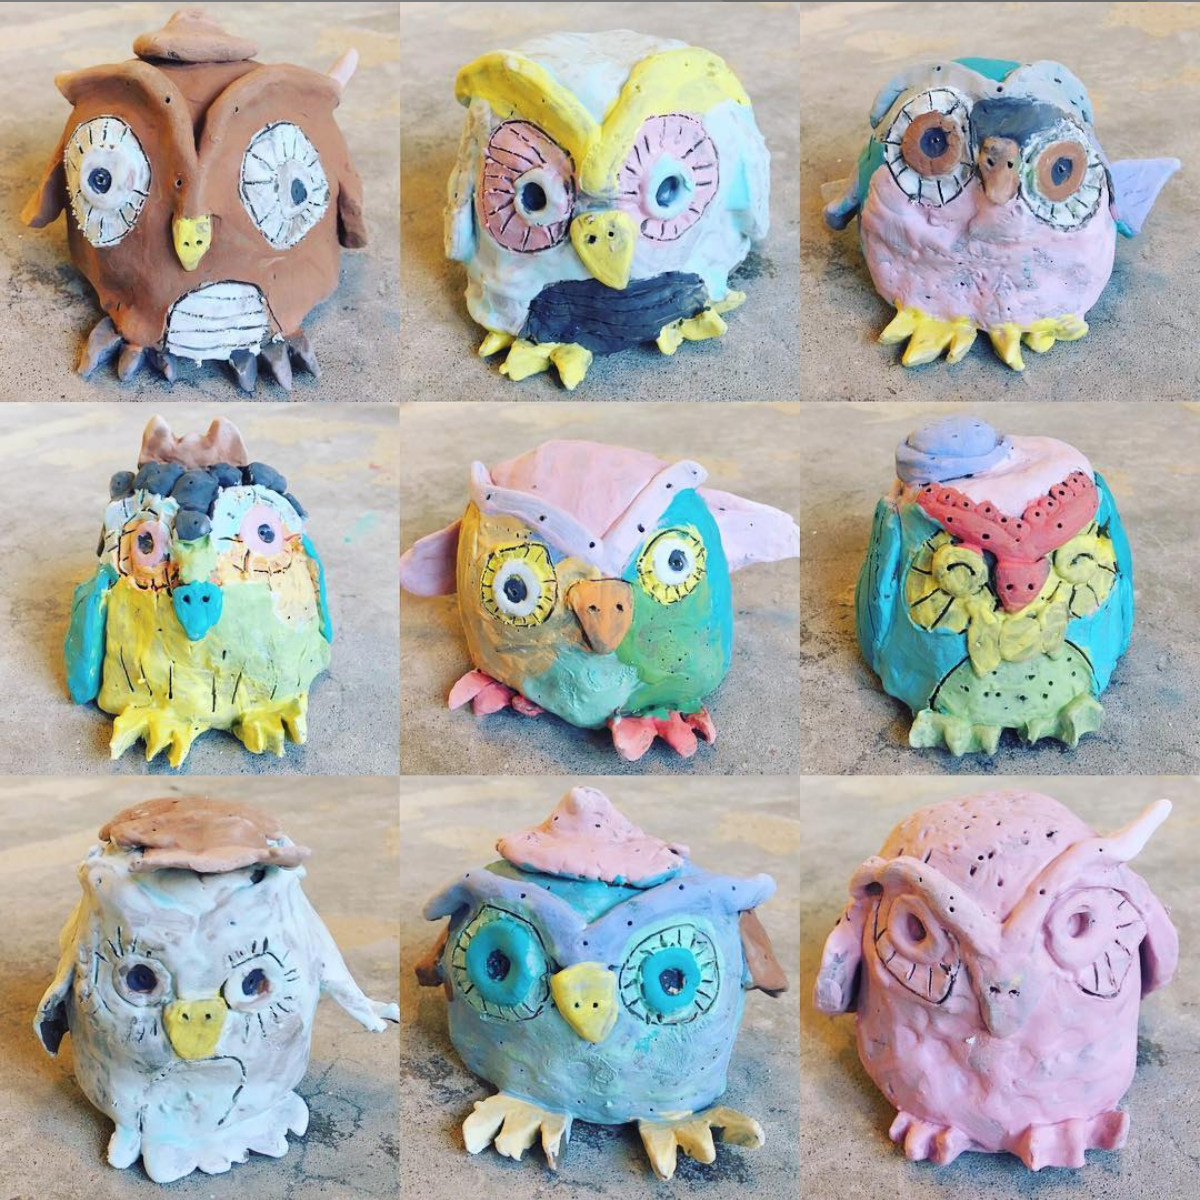 CRAZY FOR CLAY (ages 4-12)   BOTH SESSIONS FULL  June 17 - June 20 $160 (whole week) 11am - 1pm  OR  2pm - 4pm